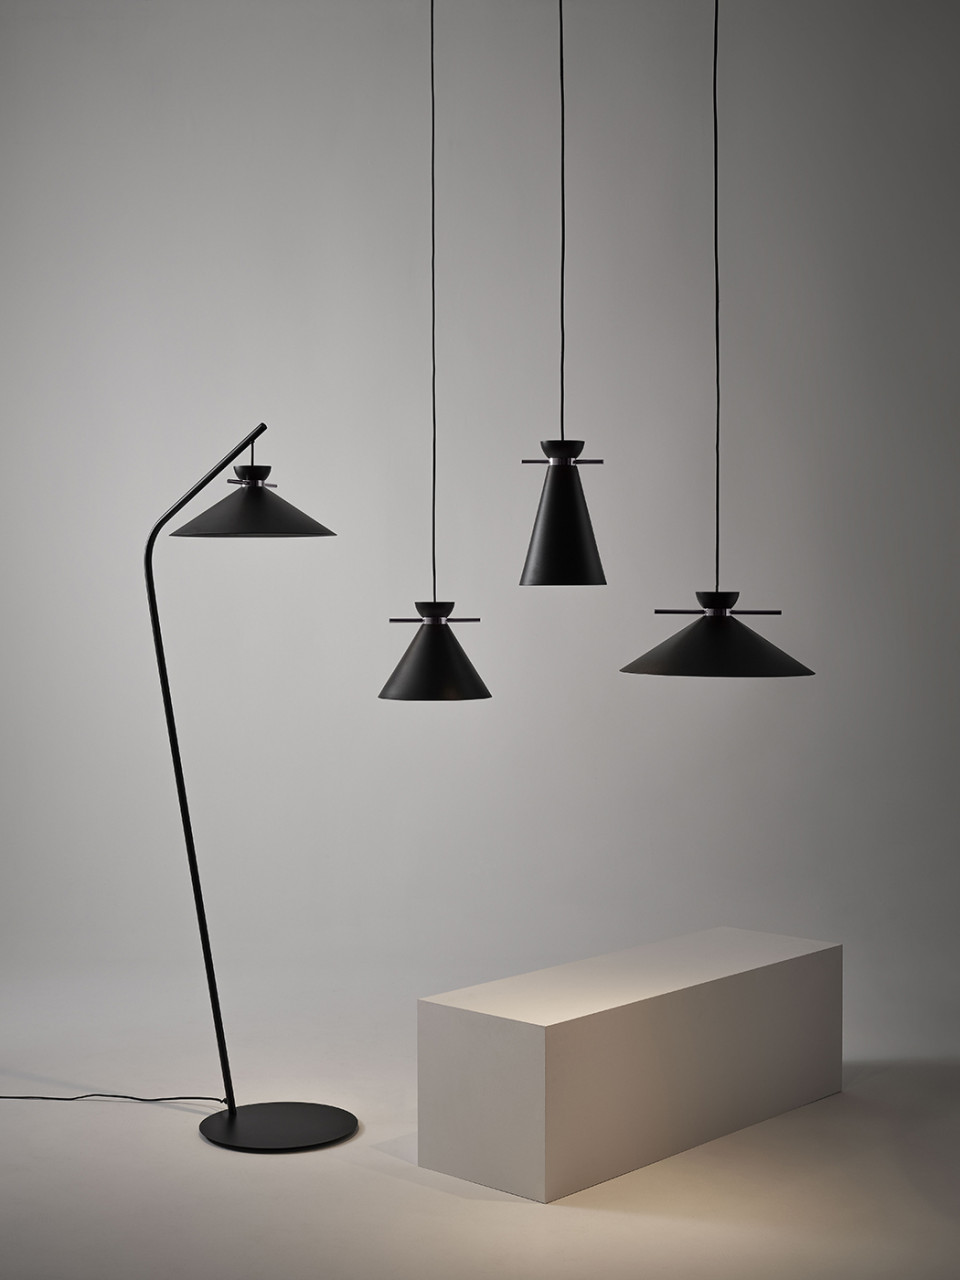 Japan lamp collection by Midj